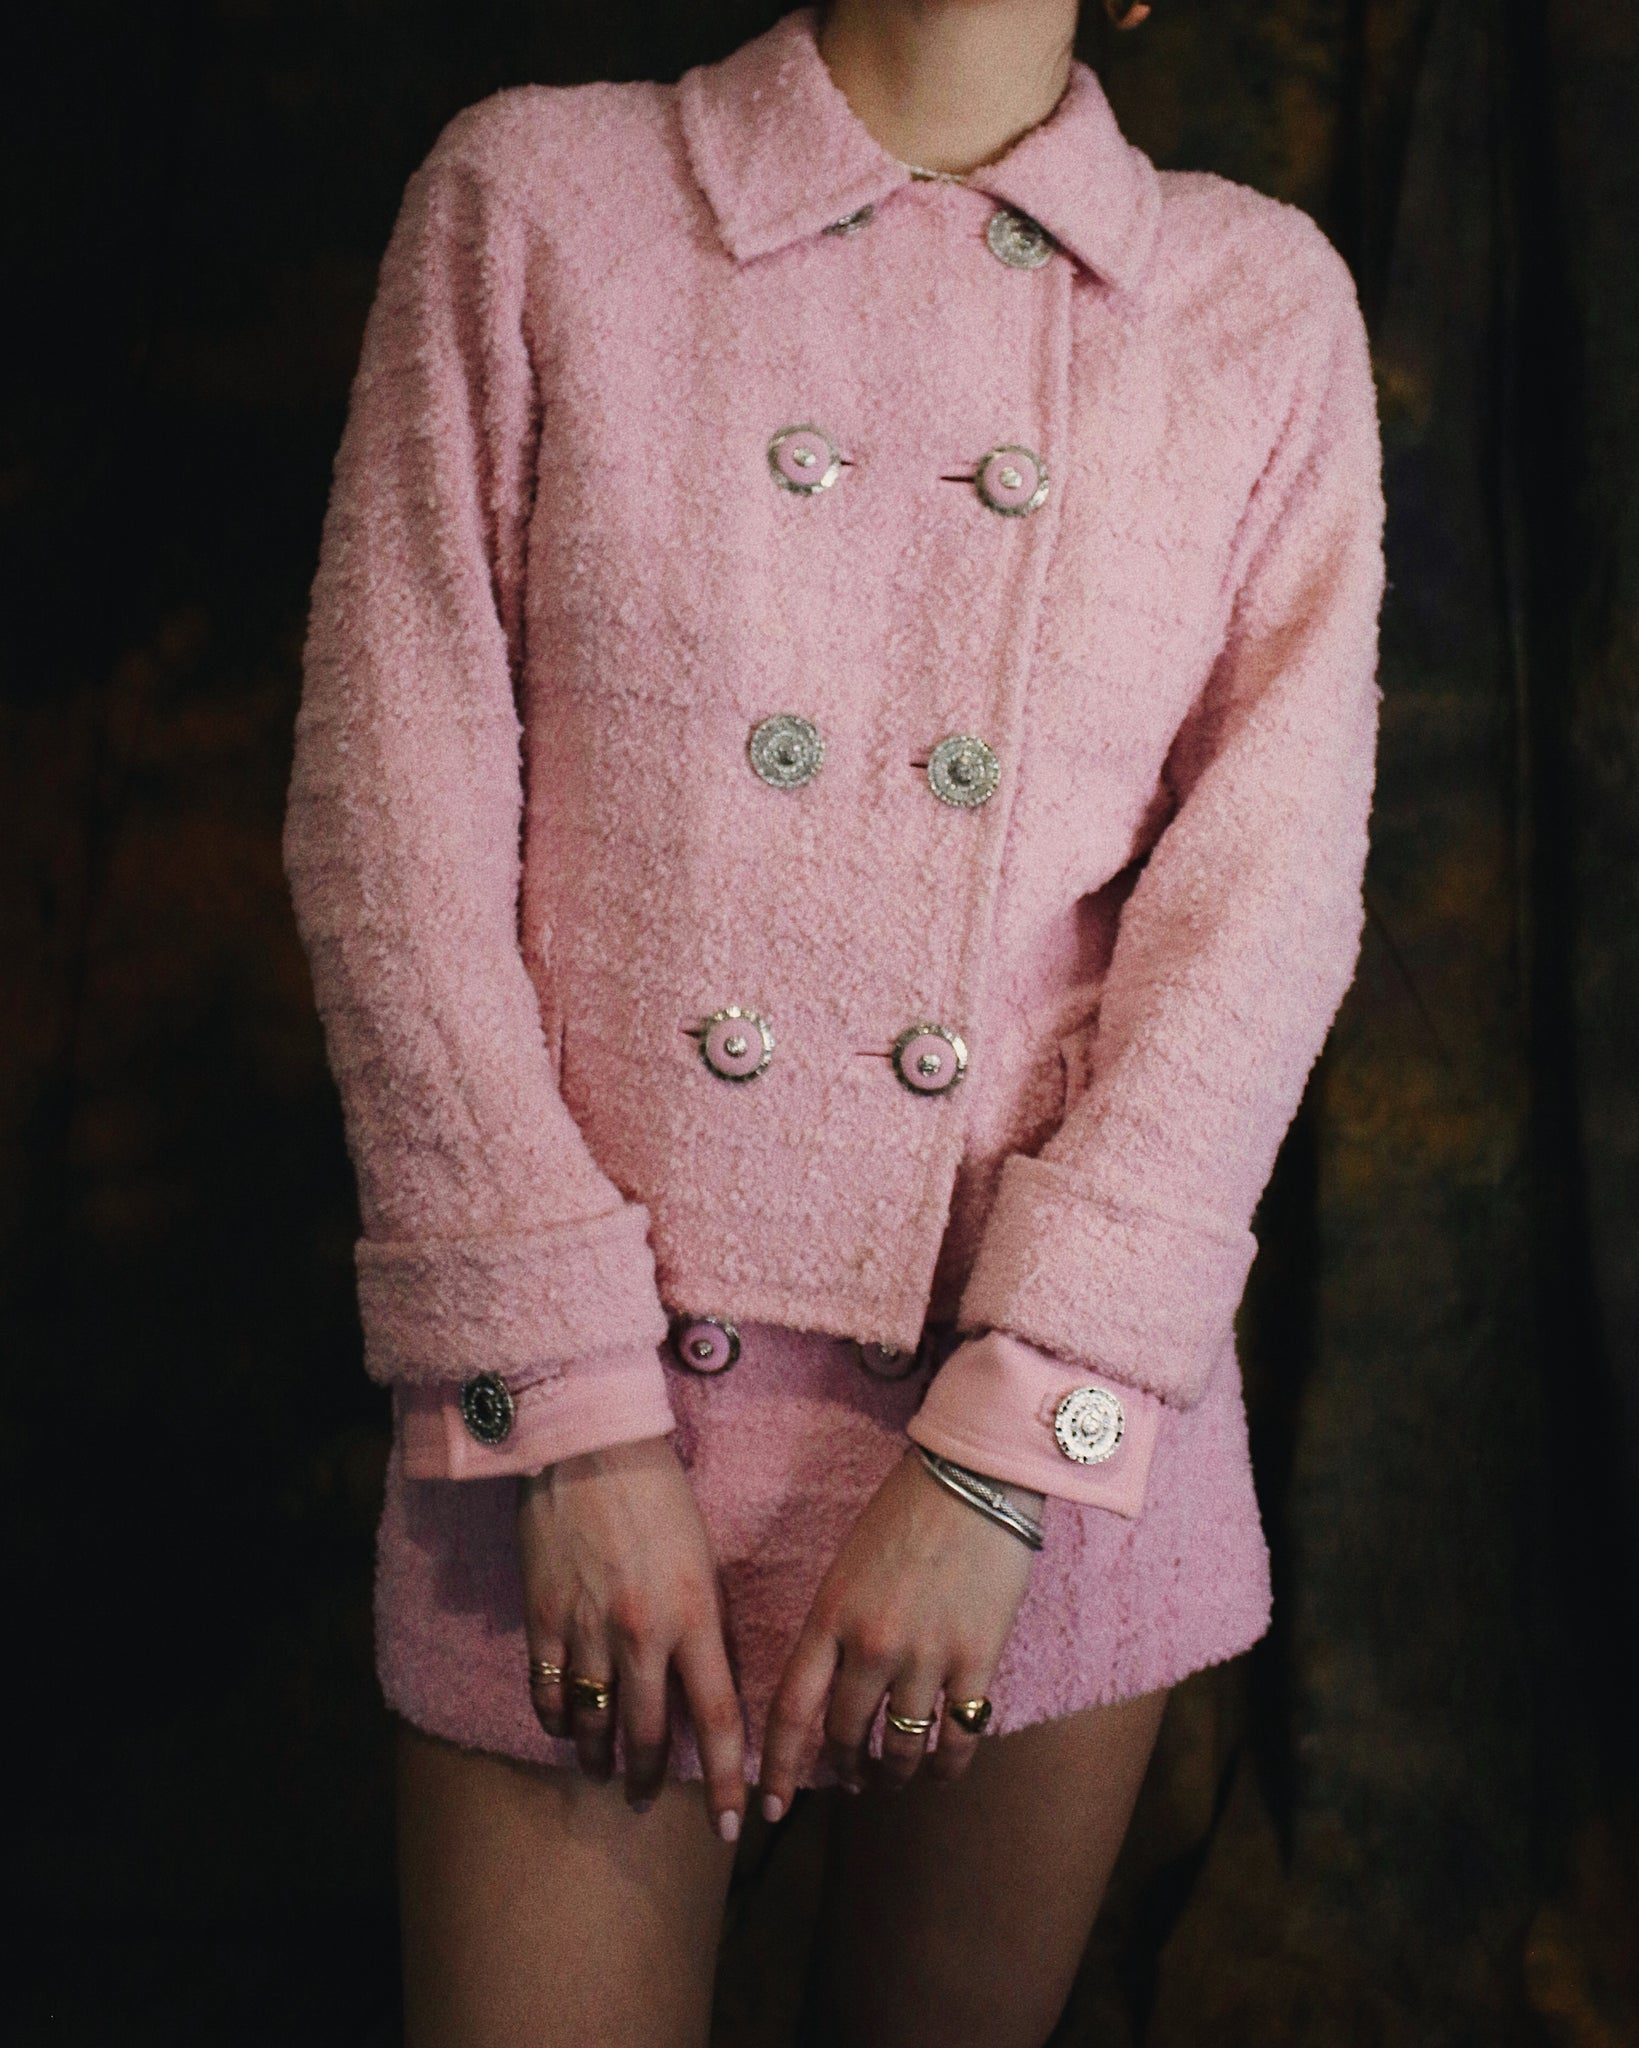 Gianni Versace Couture Pink Wool 2-Piece Jacket Skirt Suit Set 1990's